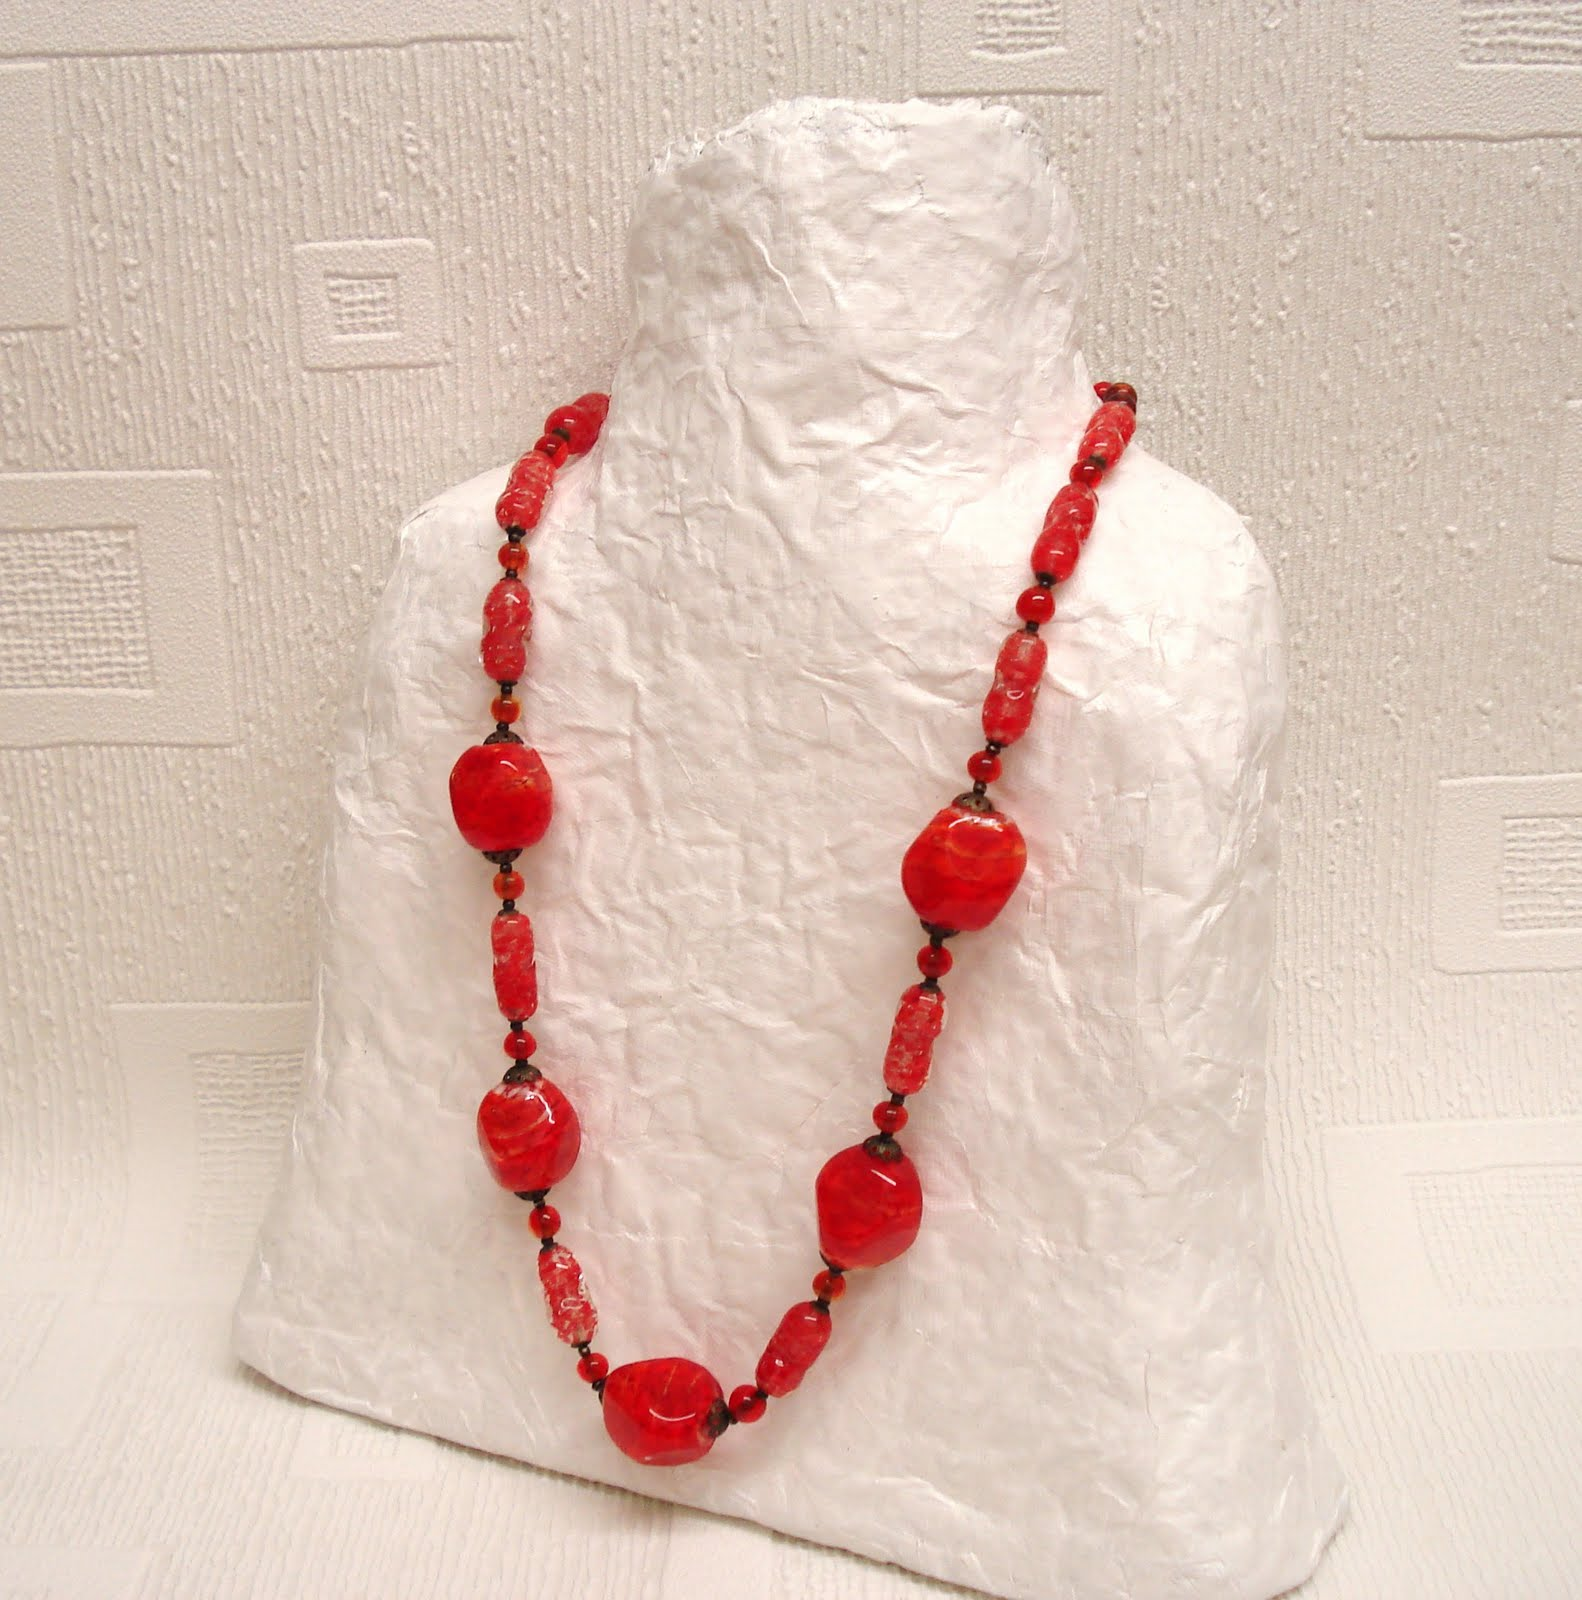 Recycled paper jewellery display julietk for How to make paper mache jewelry